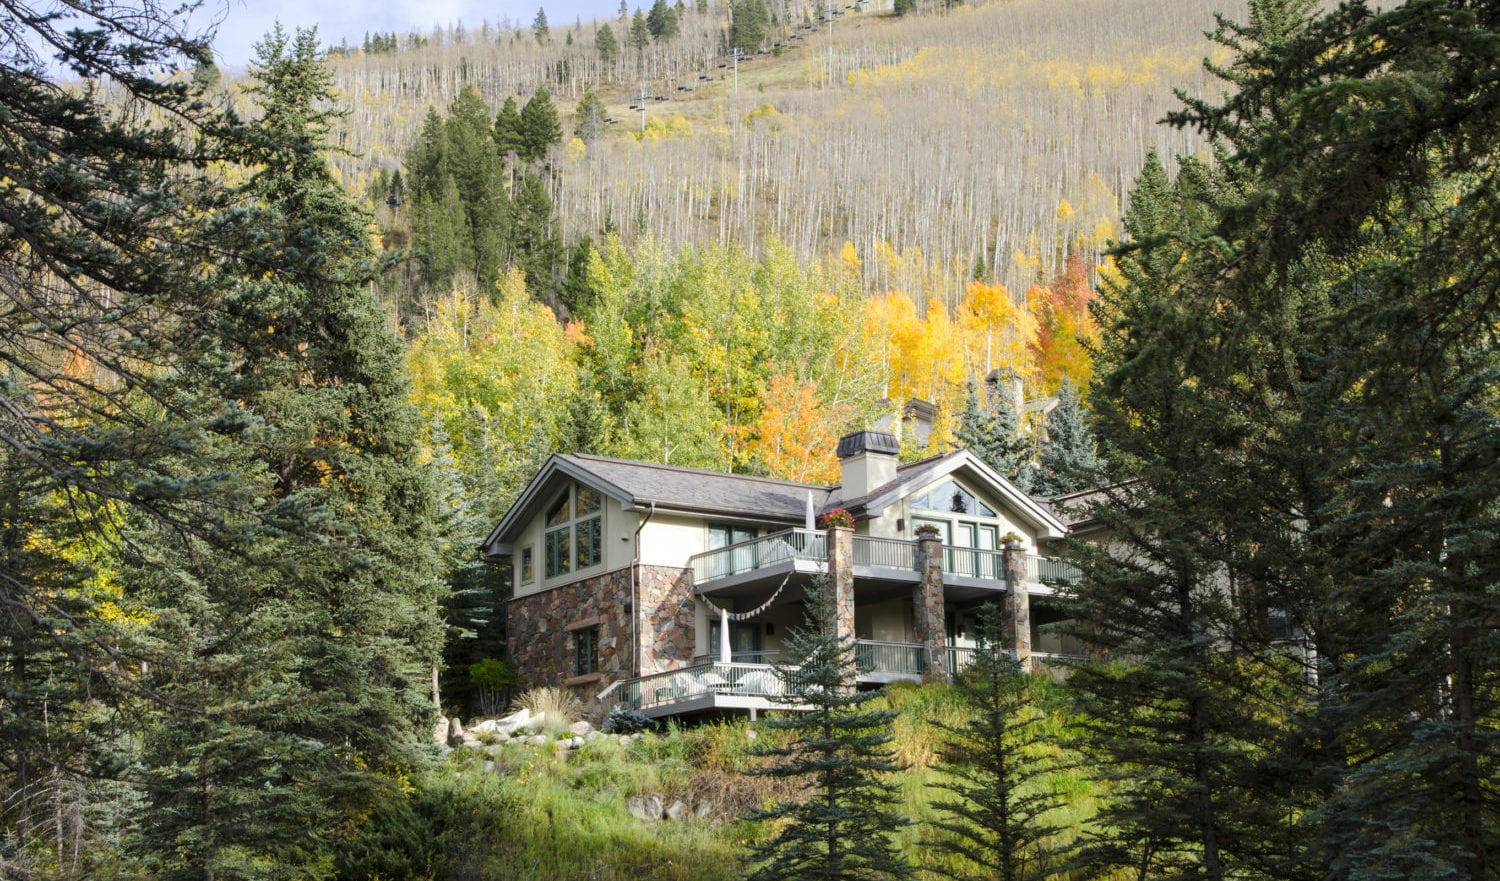 Vail, Colorado, USA - October 1, 2015: A Multi-million dollar home has been built along the Gore River in Vail, Colorado. The village was established and built as the base village to Vail Ski Resort, with which it was originally conceived and is the third largest ski mountain in North America. Vail attracts wealthy visitors, many of whom, who build and purchase vacation homes and condominiums near the ski slopes. Each Autumn, the Colorado Rocky Mountains create a dazzling and colorful display as the Aspens turn a brilliant yellow and glow against the mountains. In addition, their tall, vertical, trunks with white bark create a repetitive pattern under the foliage.